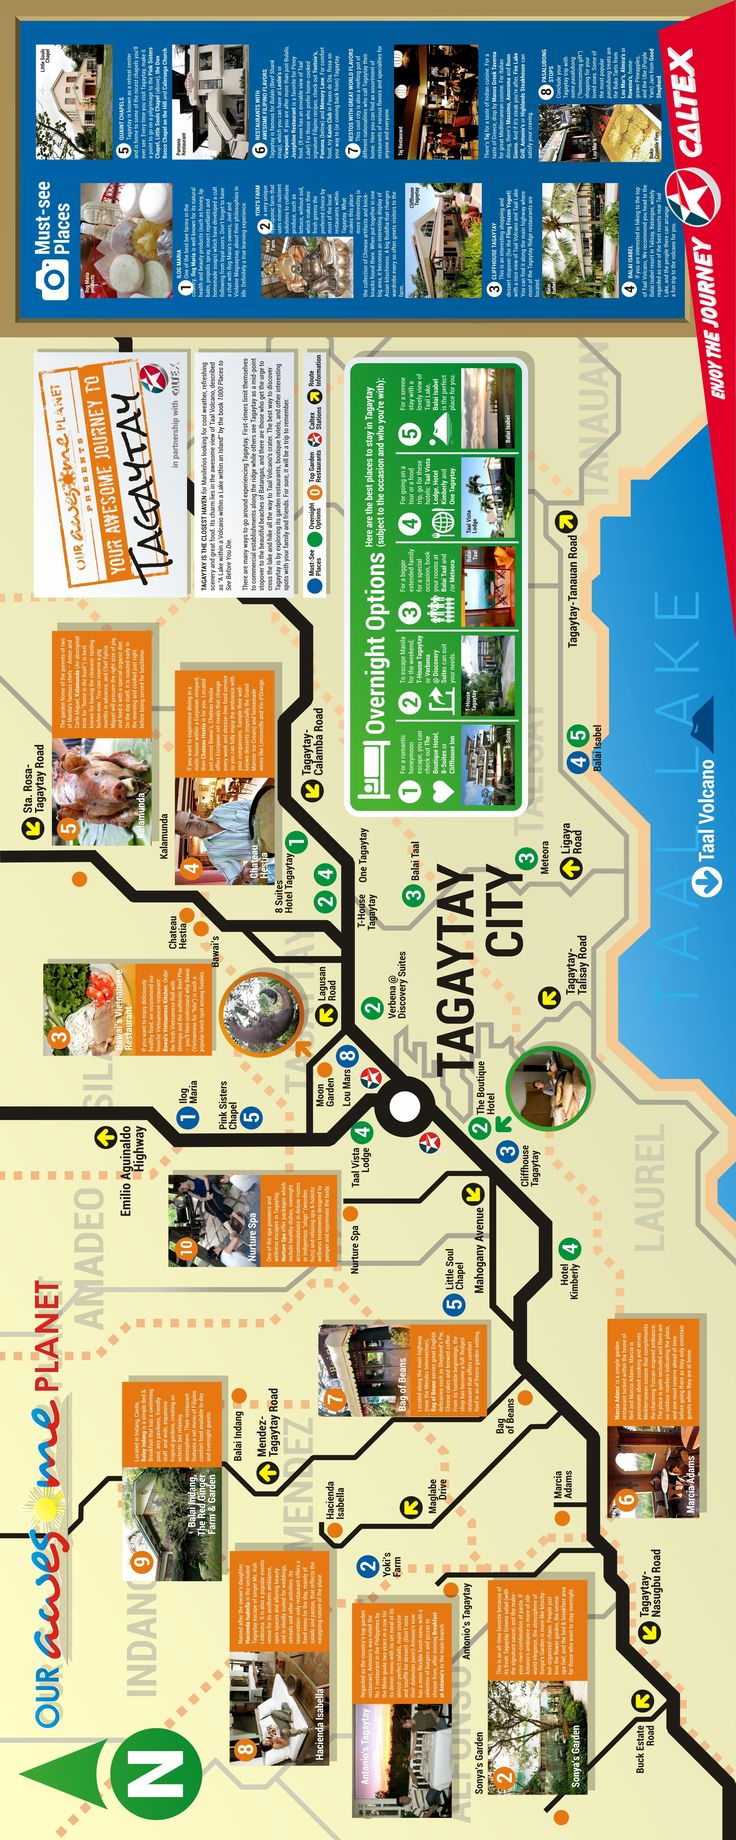 Our Awesome Planet in partnership with Caltex Philippines presents Awesome Journeys Infographics: (Download: Your Awesome Journey to Tagaytay Food Trip PDF File for Printing ) Awesome Journey Infographics Series: PAGUDPUD: Your Awesome Journey to Pagudpud (Infographic) BICOL: Awesome Journey to...